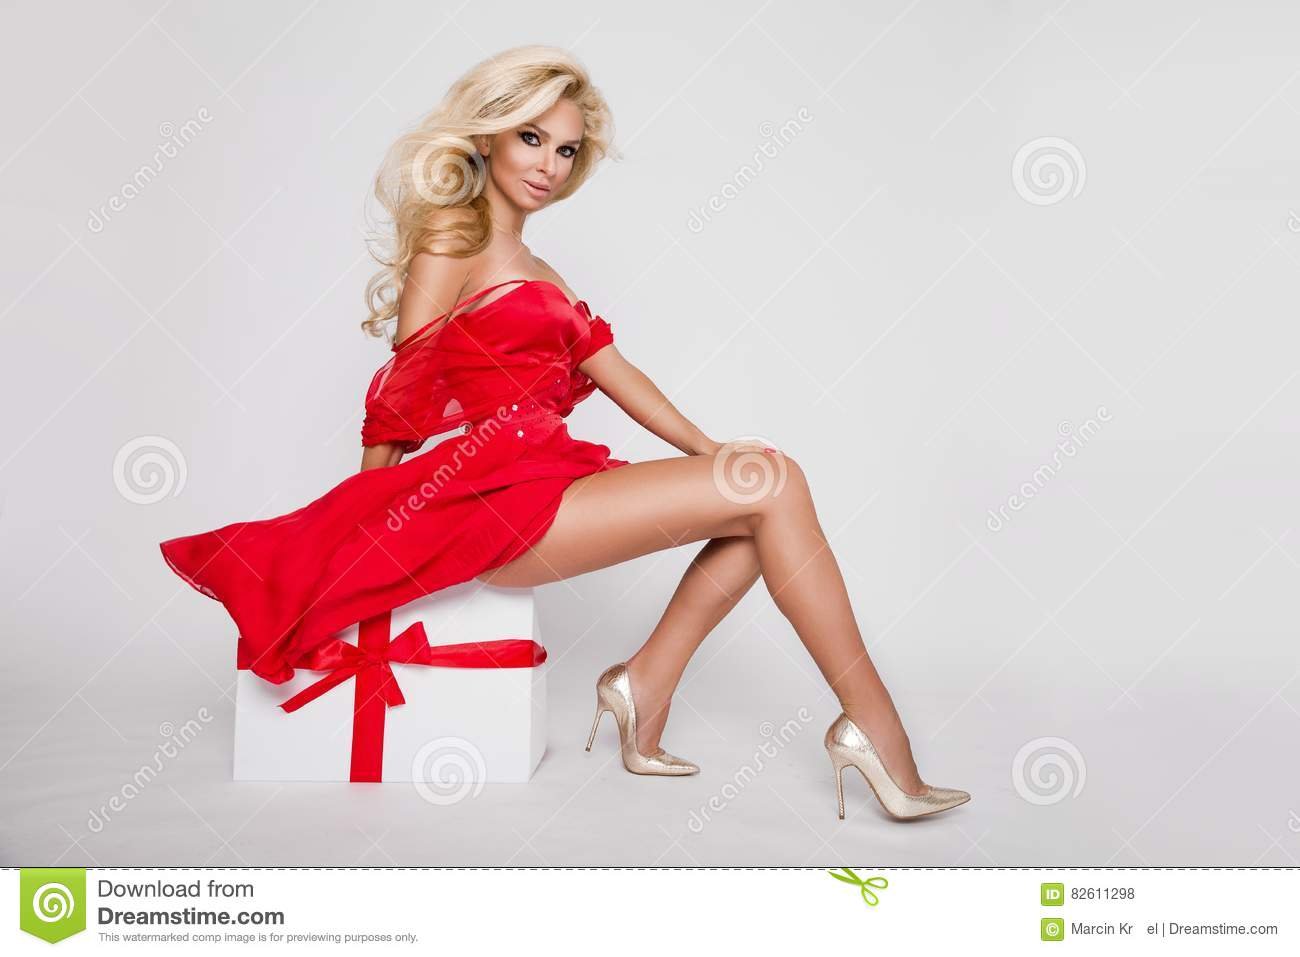 a5c673ea11b Beautiful blonde female model snowflake dressed as Santa Claus erotic red  lingerie with white fur and amazing stockings and high heels lovely makeup  sensual ...